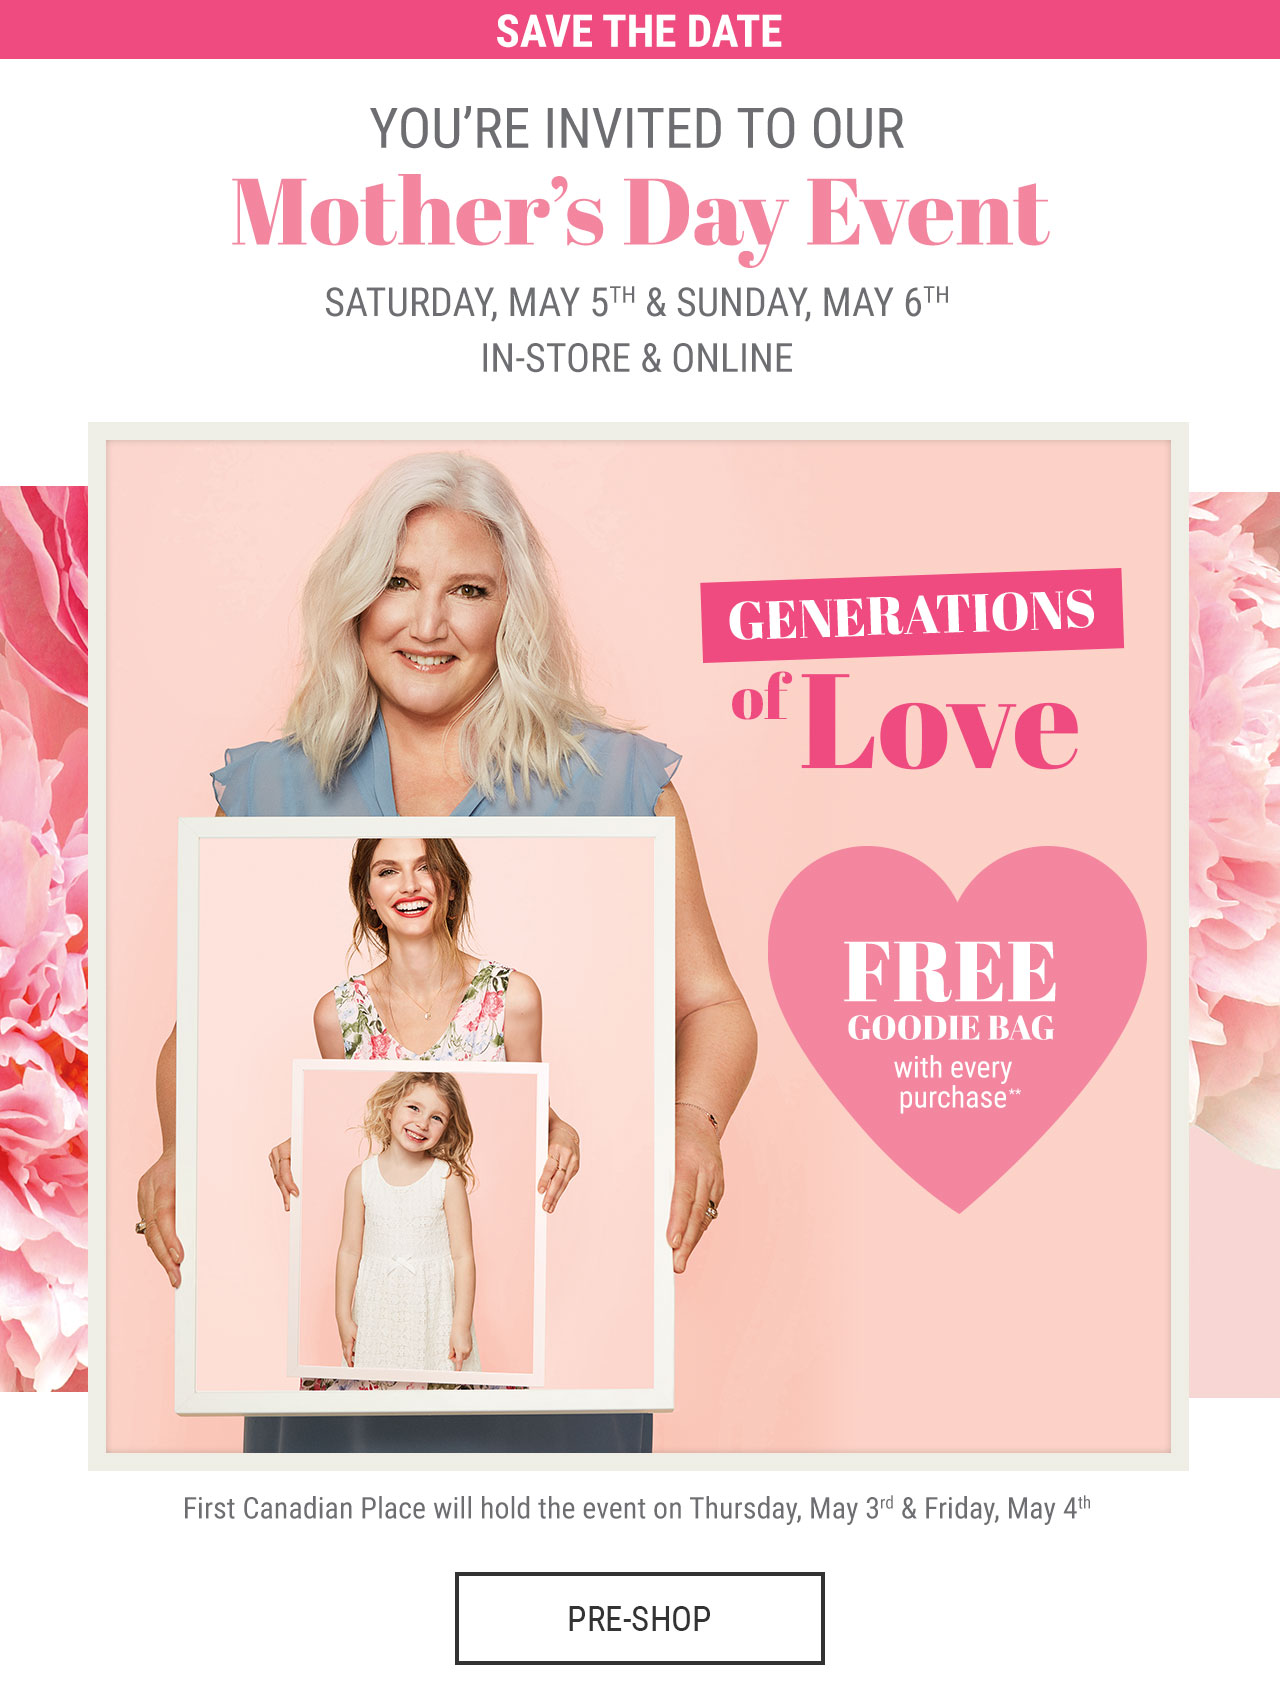 Save the date. You're invited to our MOther's Day Event. Saturday, May 5th & Sunday, May 6th. In-store & Online. Generations of Love. Free Goodie Bag with every purchase**. First Canadian Place will hold the event on Thursday, May 3rd & Friday, May 4th. PRE-SHOP.